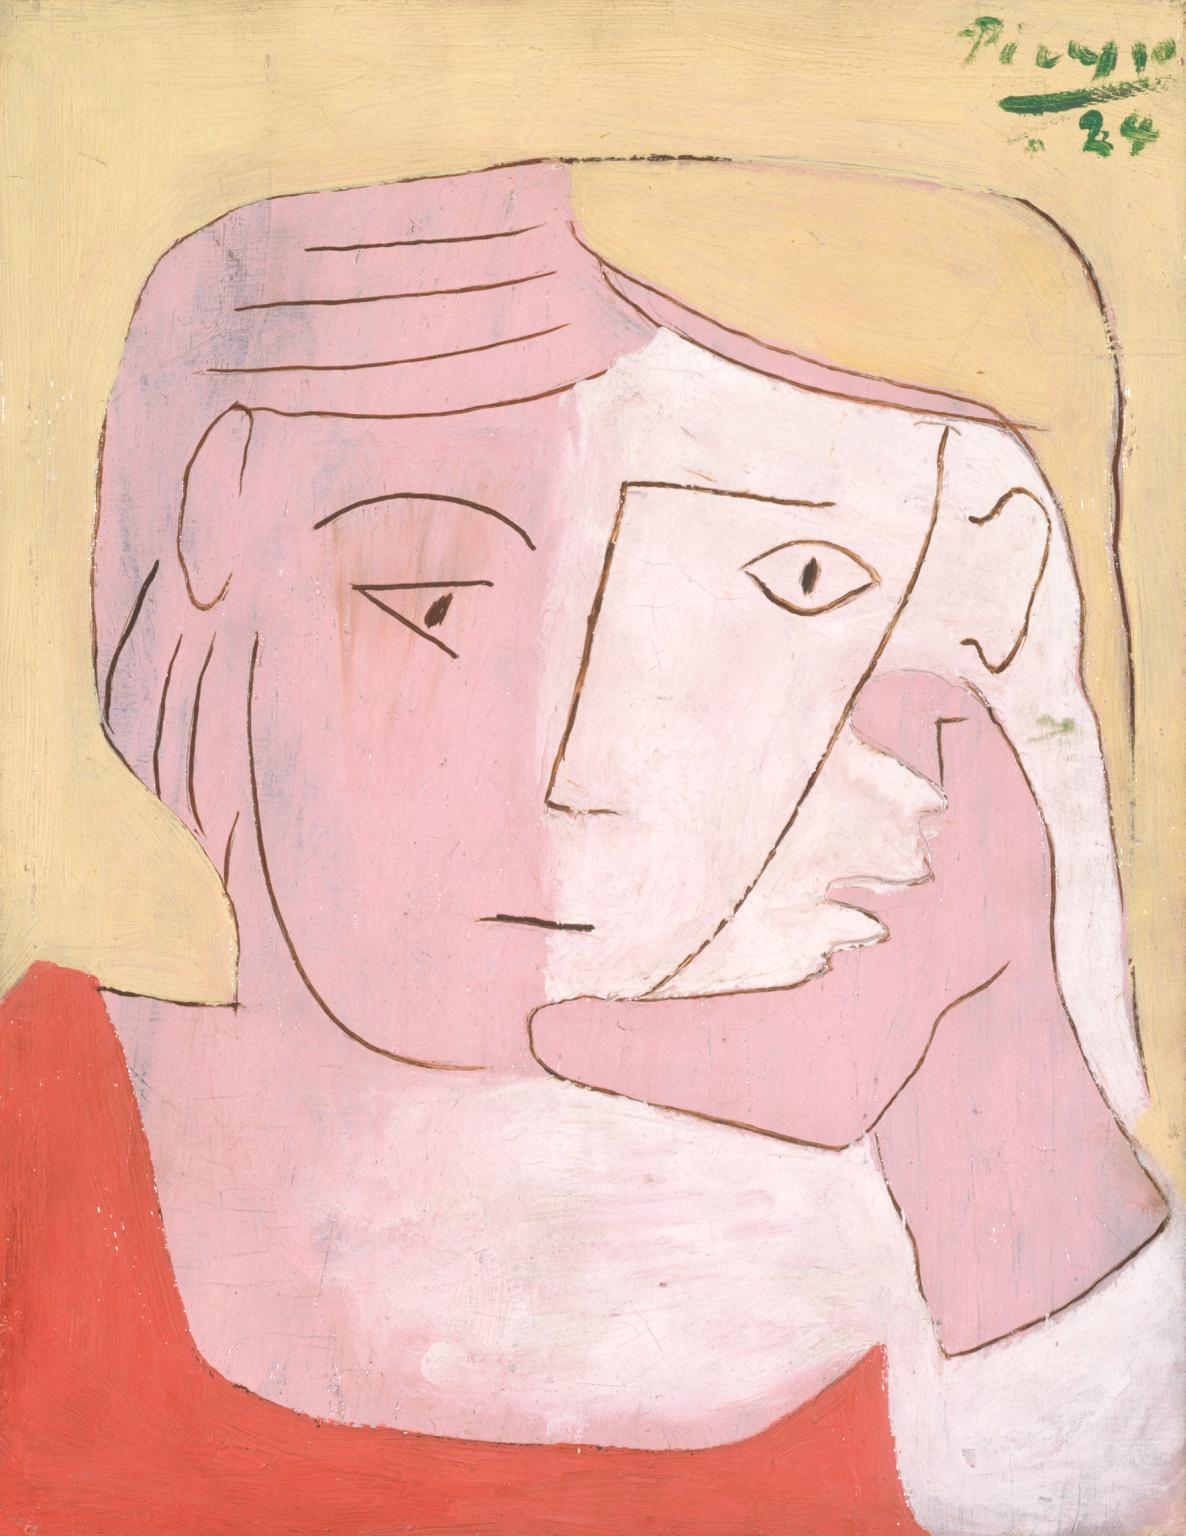 WOMAN WITH PINK EYE